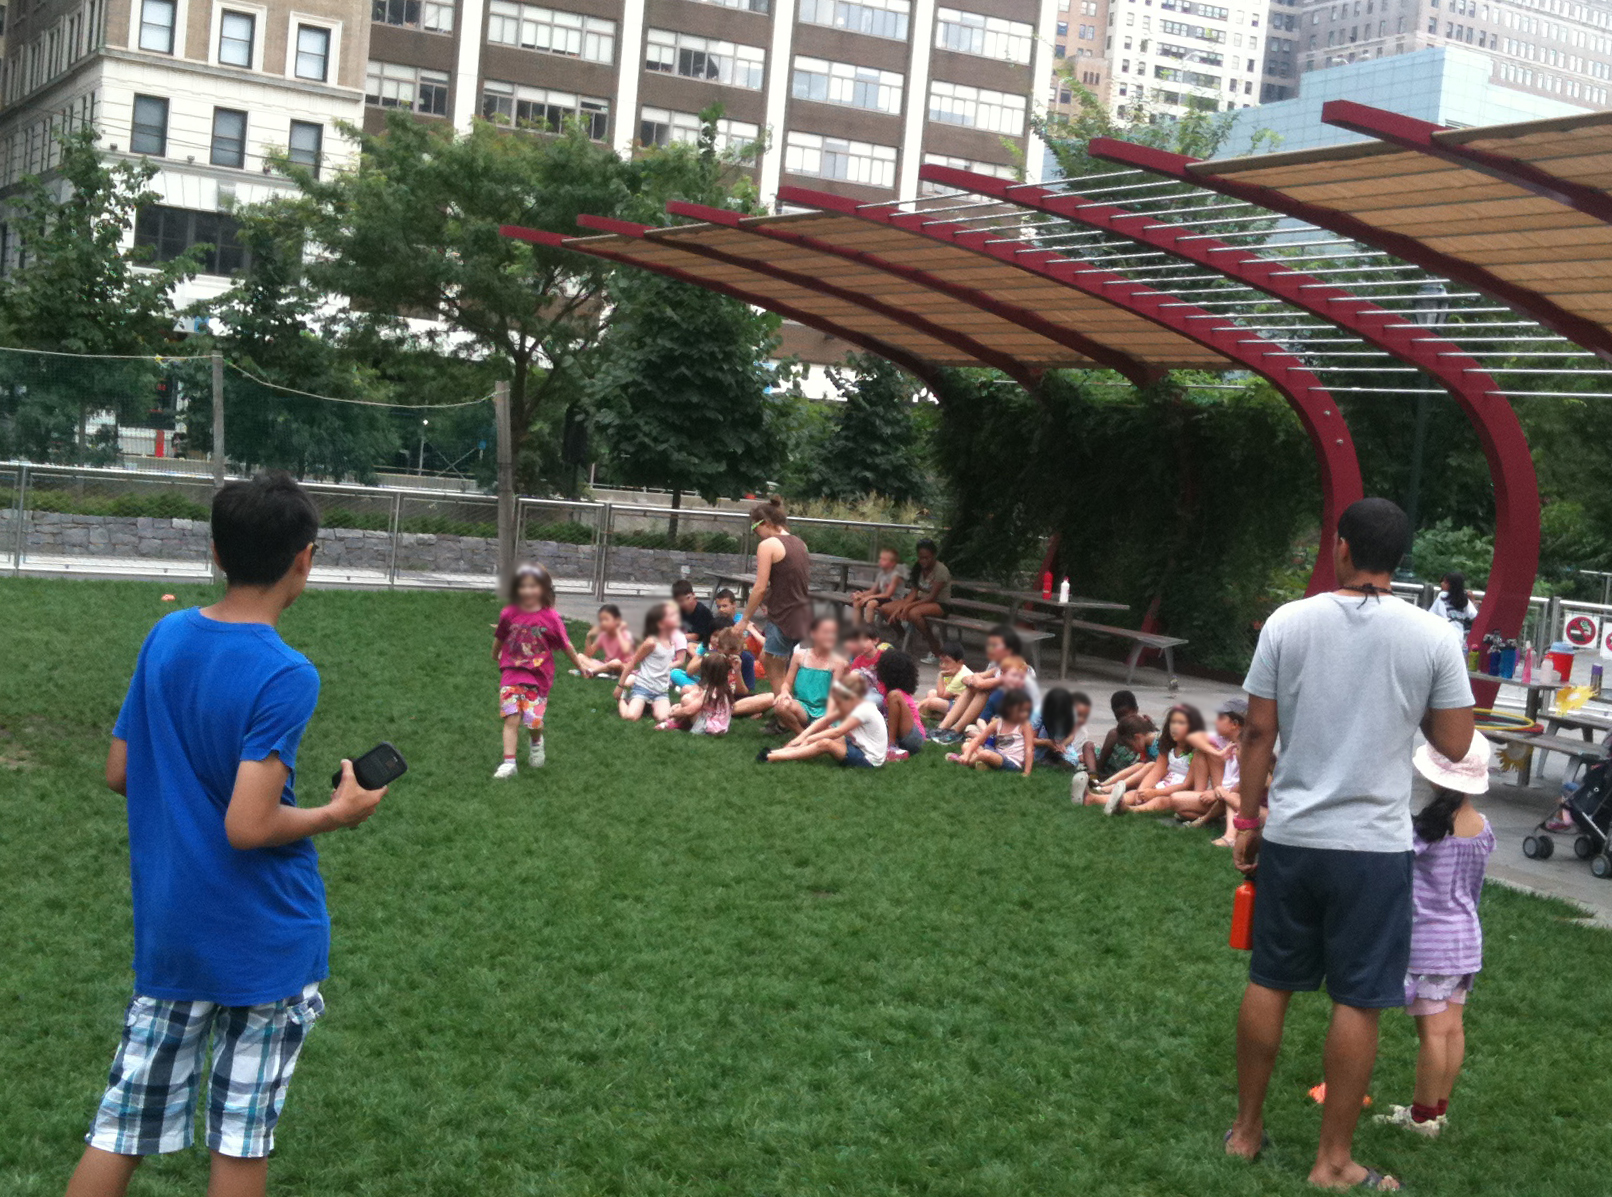 Kids-exercise-group-on-lawn